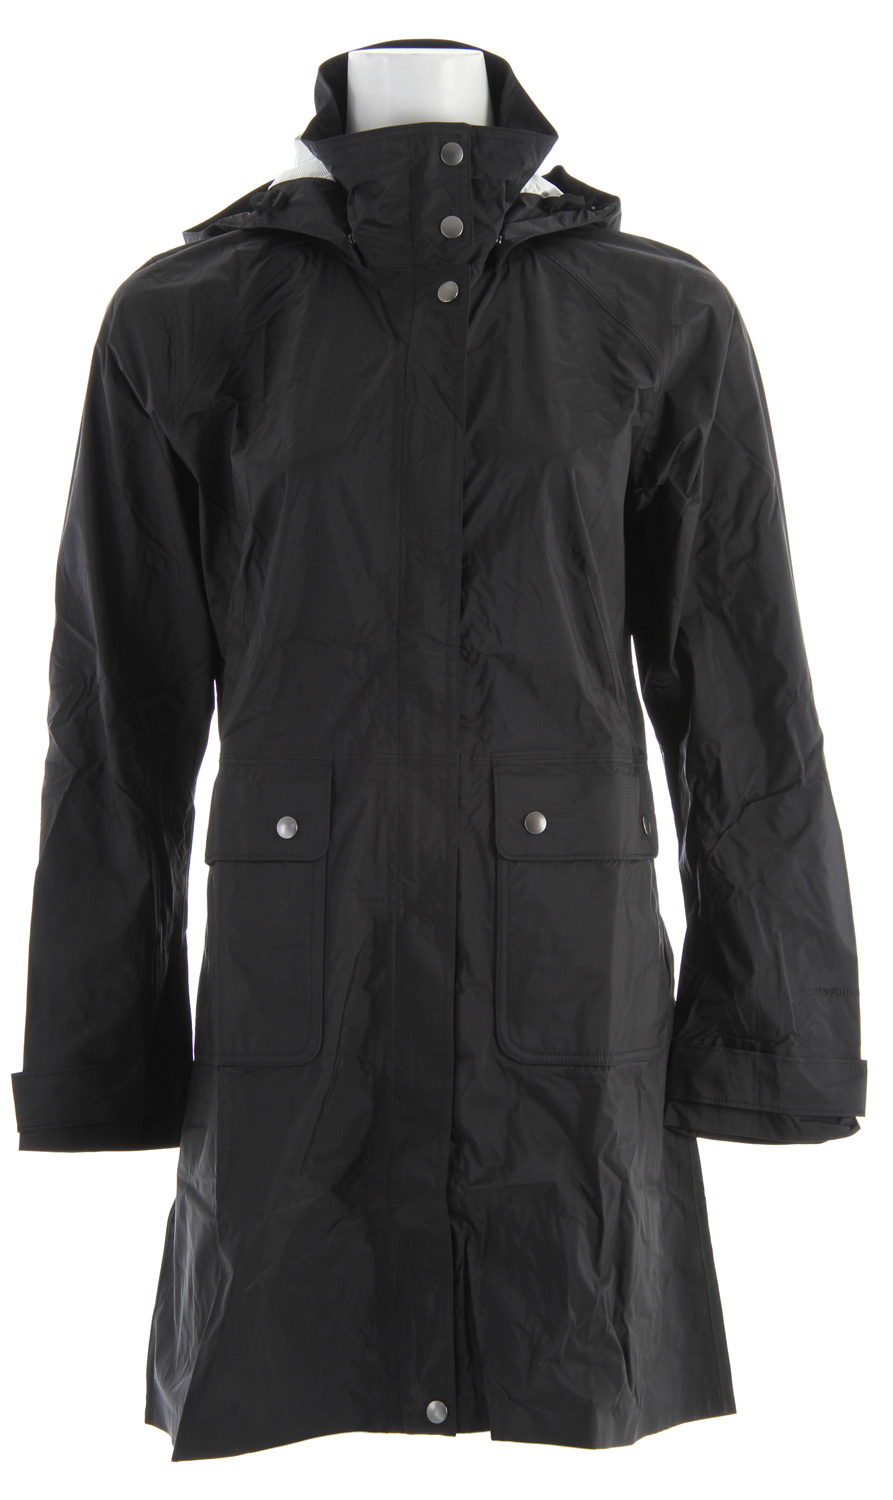 Built for harsh conditions, this packable urban trench coat is made of lightweight nylon with a waterproof/breathable H2No barrier and Deluge DWR (durable water repellent) finish. fabric: 2.5-layer, 2.6-oz 50-denier 100% nylon ripstop with a waterproof/breathable H2No barrier and Deluge DWR finishKey Features of the Patagonia Torrentshell Trench Coat: 2.5-layer tear-resistant fabric is packable and lightweight; interior surface/texture channels moisture away from skin, slides easily over layers, and protects the waterproof/breathable barrier from abrasion Adjustable, removable hood secures with hidden snaps Full-length snap placket with 2-way zipper and storm flap Articulated elbows; cuff tabs have 2-position snaps Pockets: Two front drop-in with snaps; zippered interior mesh Front and back princess seaming and darts for a feminine silhouette; elasticized waist at back Length falls above the knee - $124.95